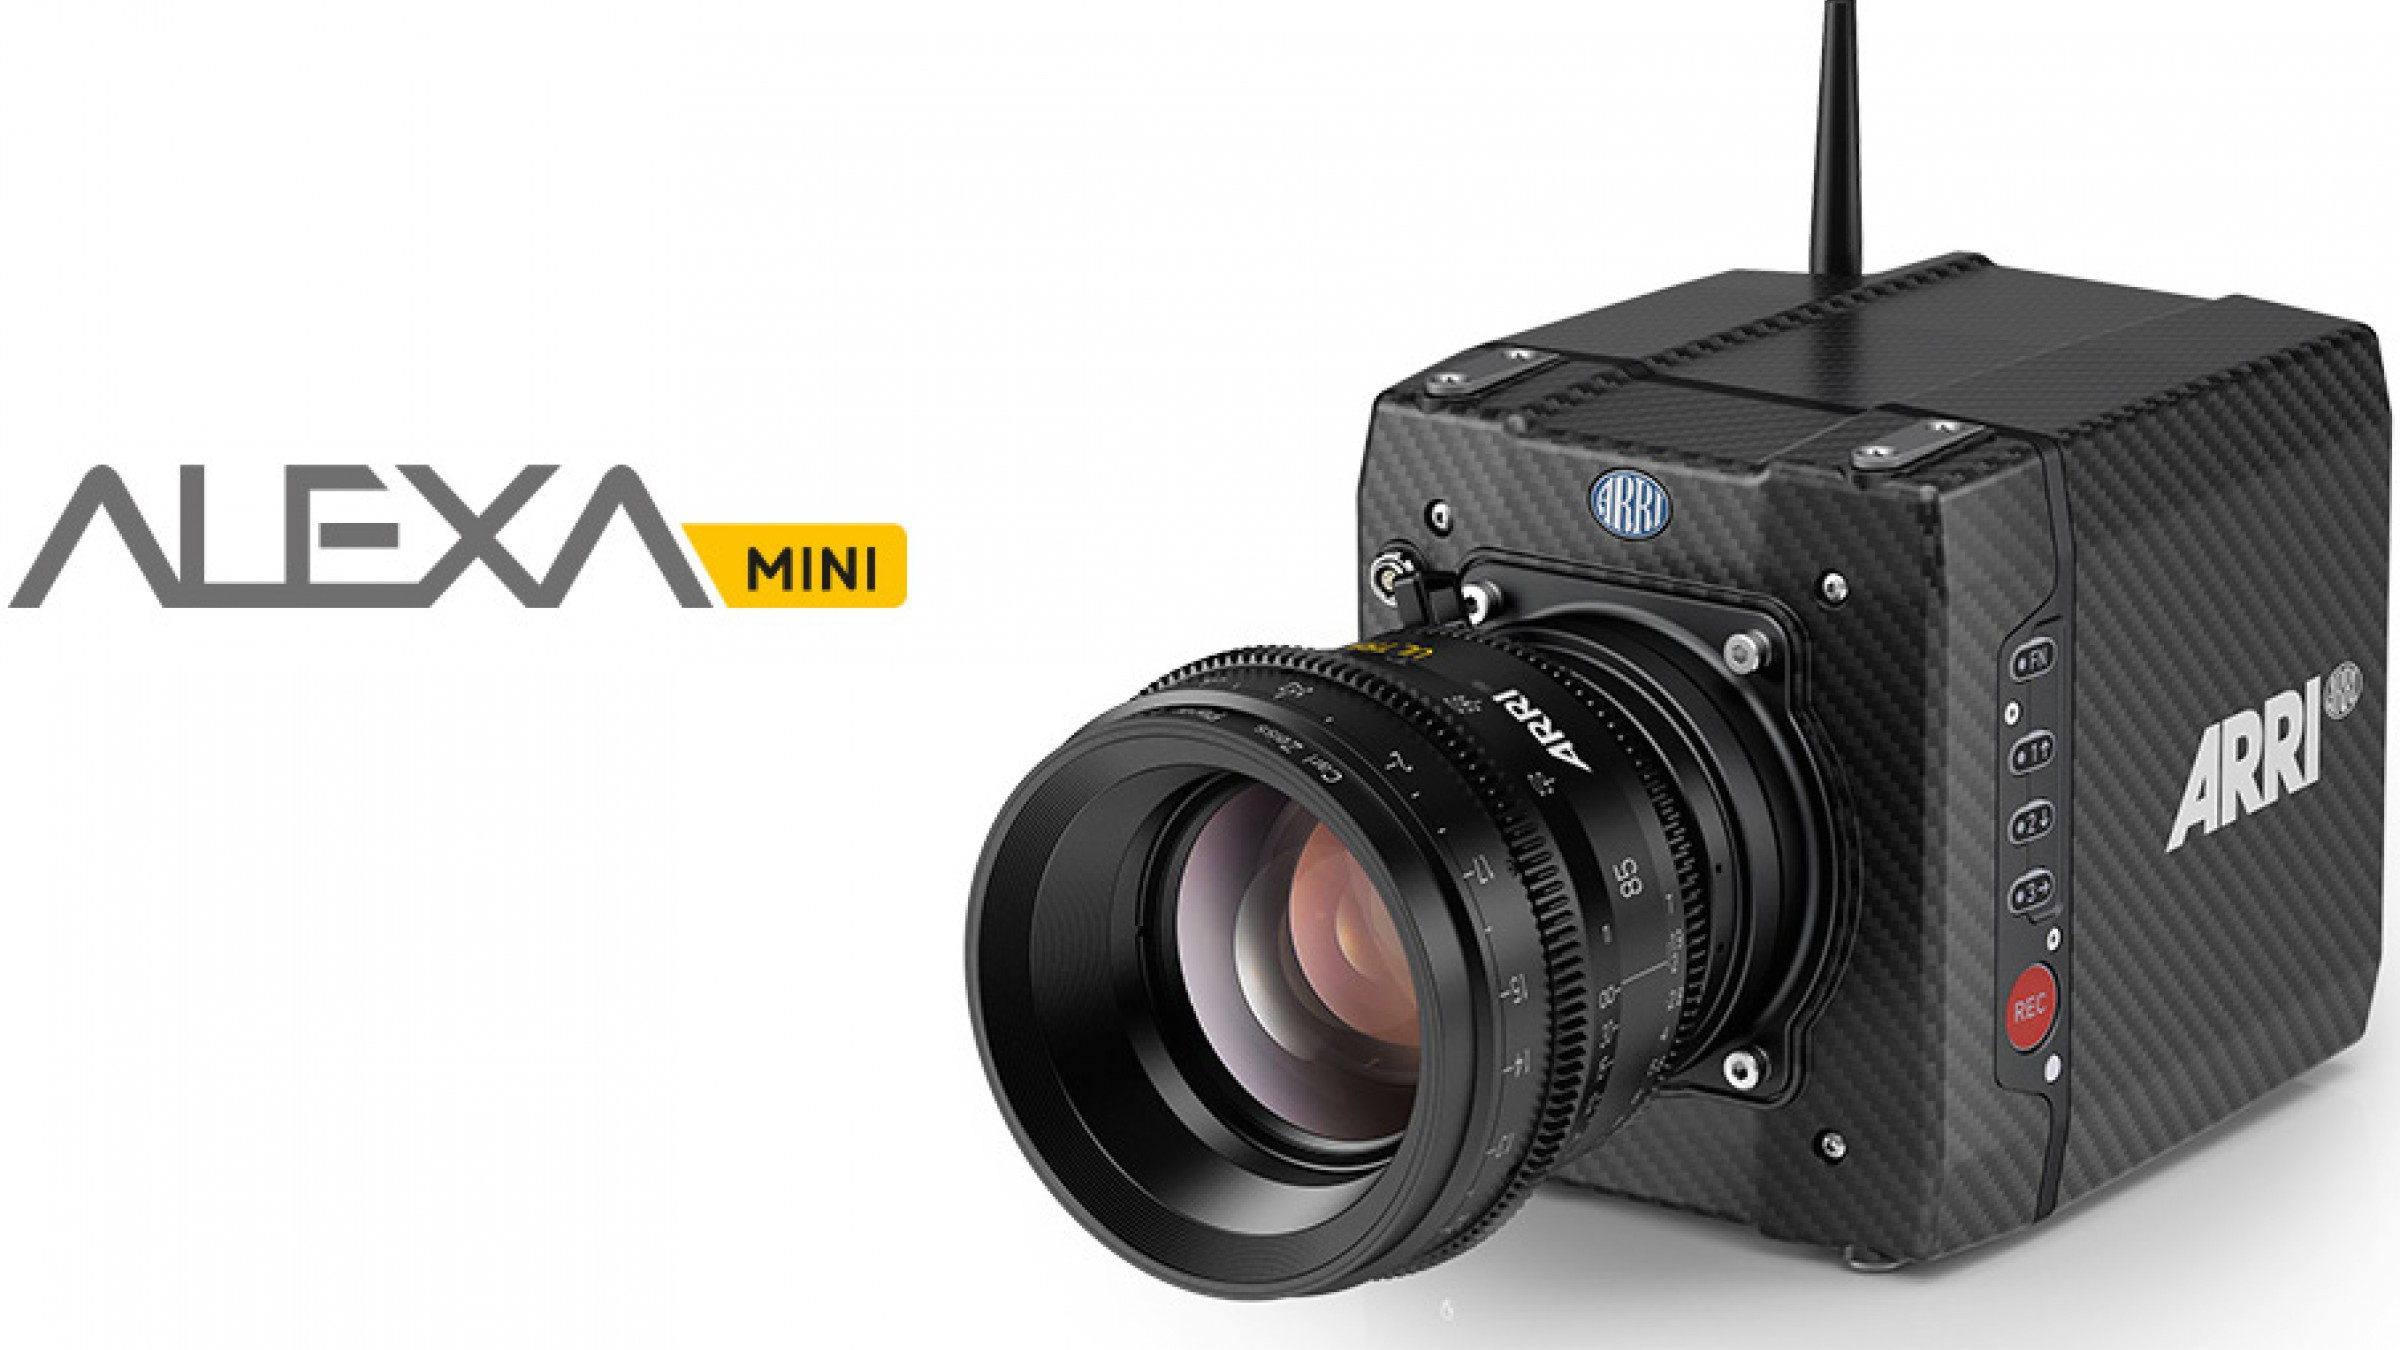 New Arri Alexa Mini Same Image Quality In A Much Smaller